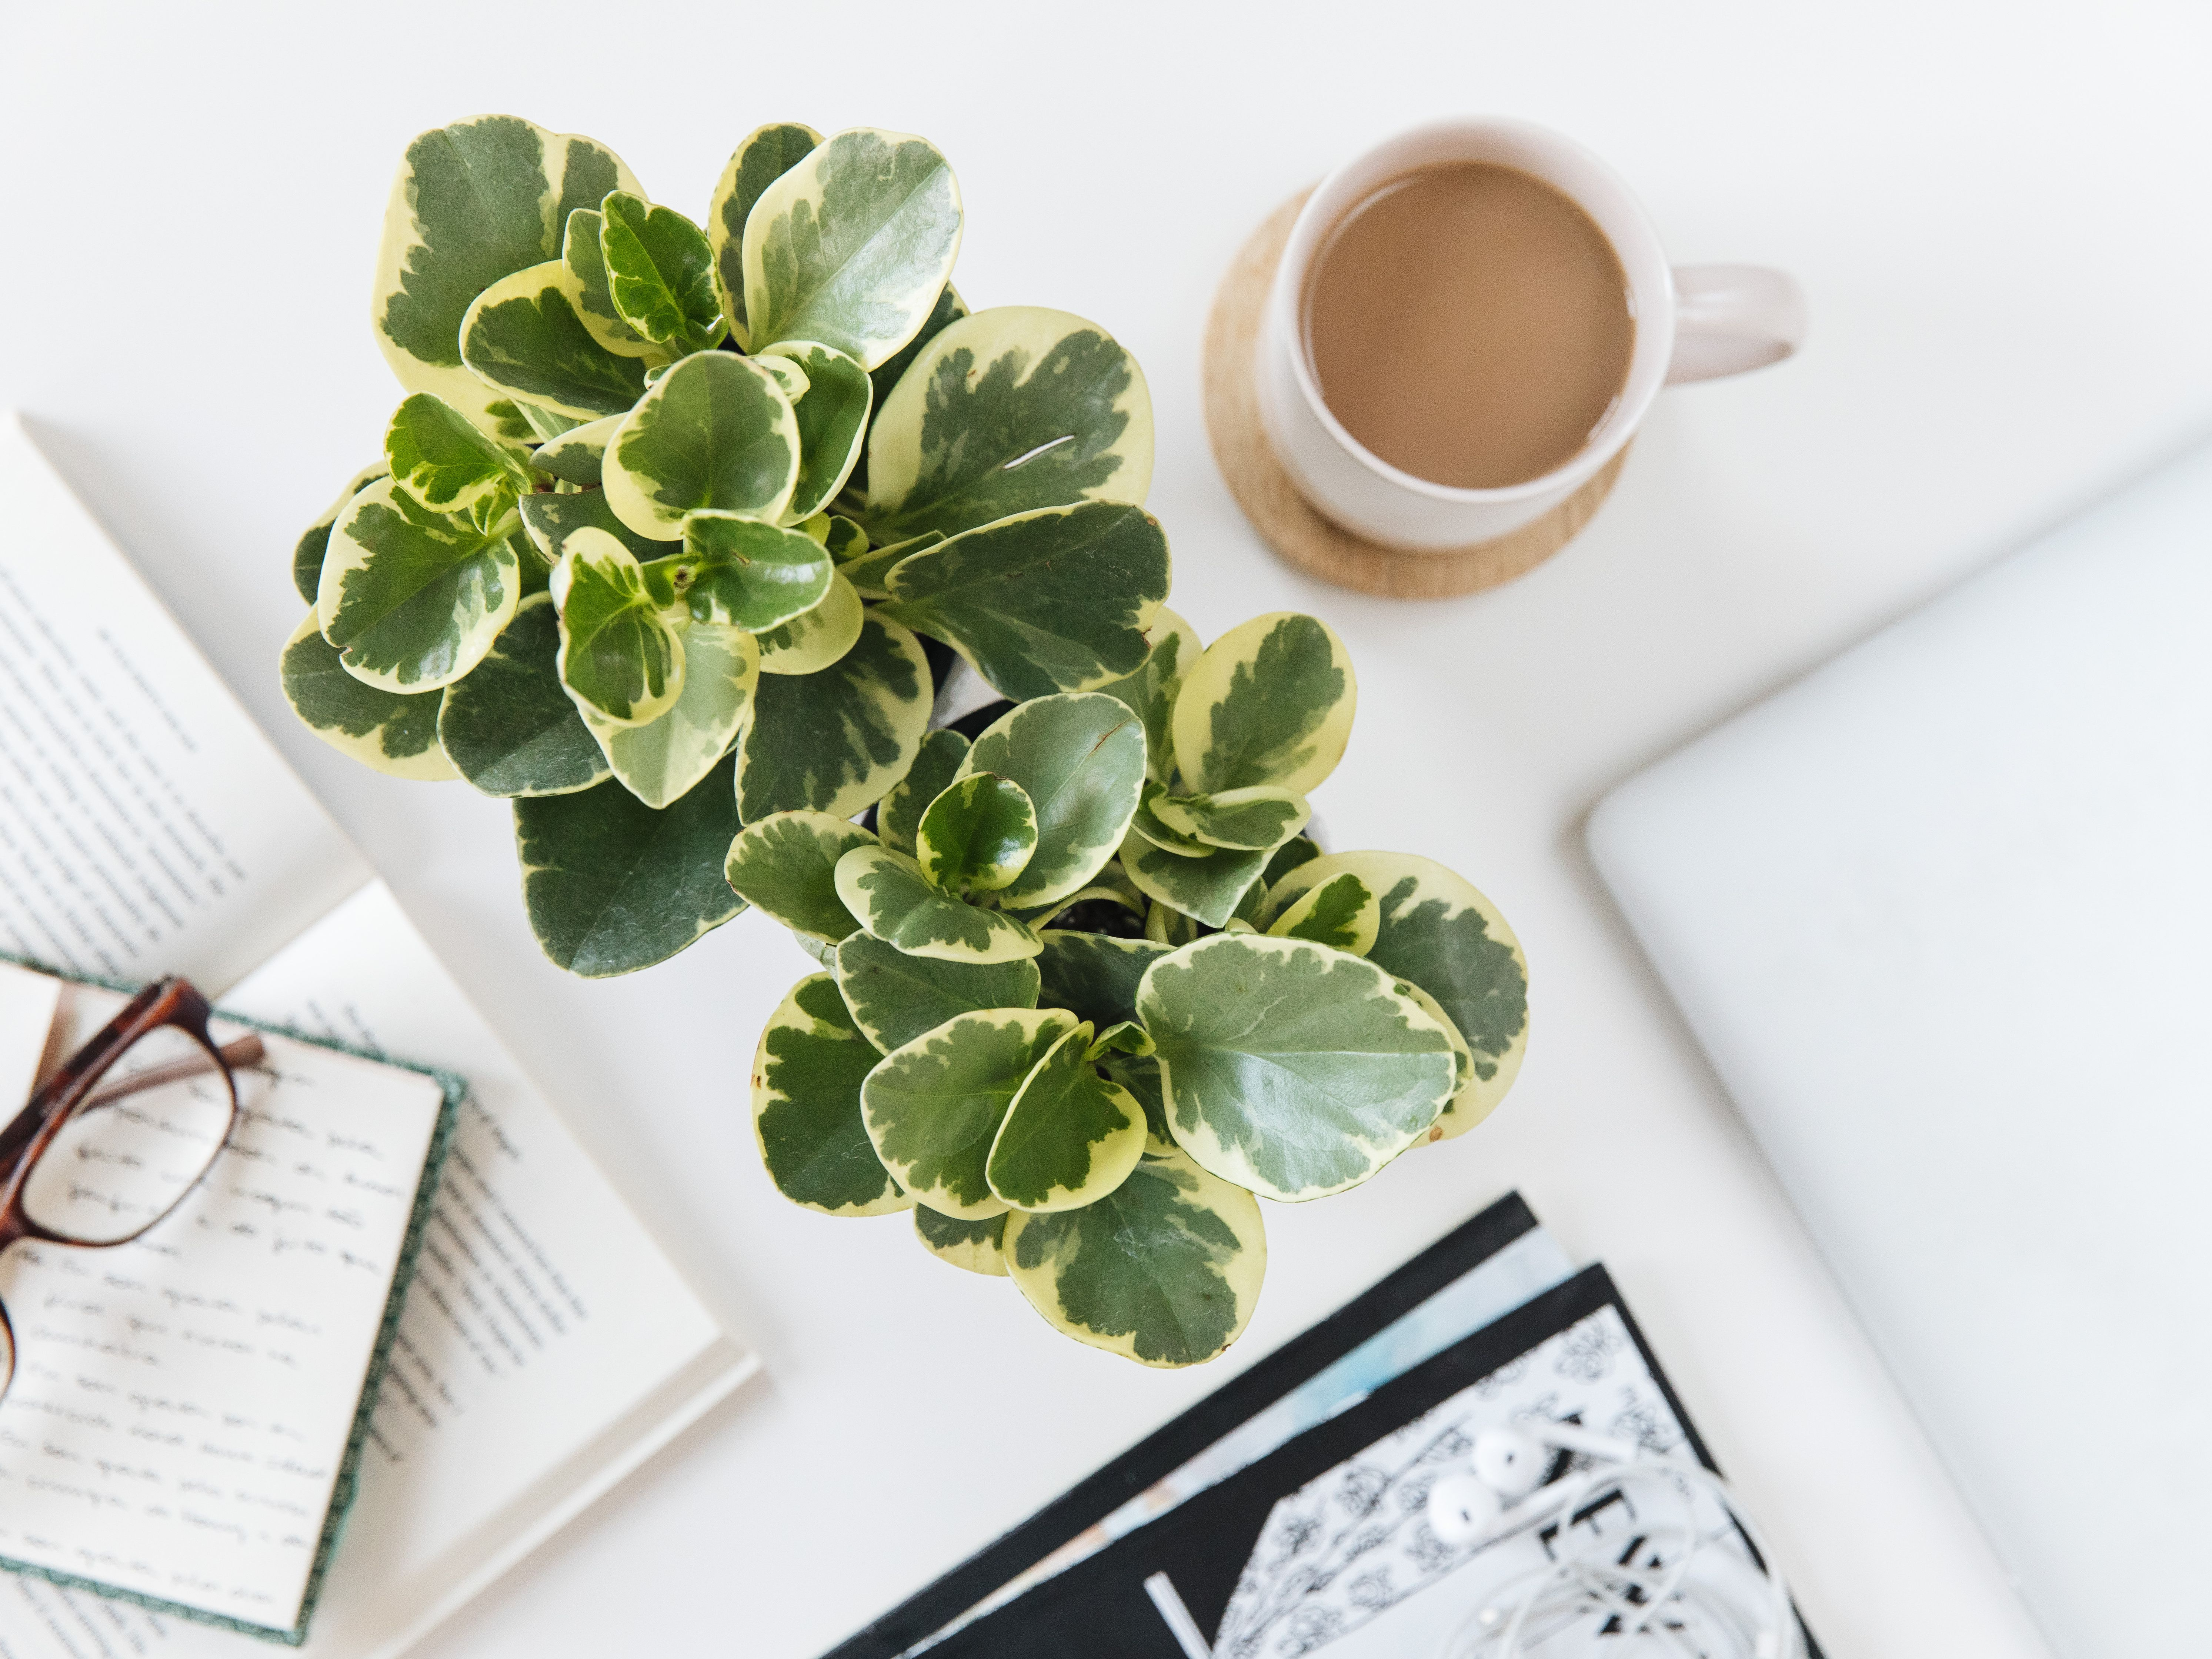 How To Grow And Care For Peperomia Plants